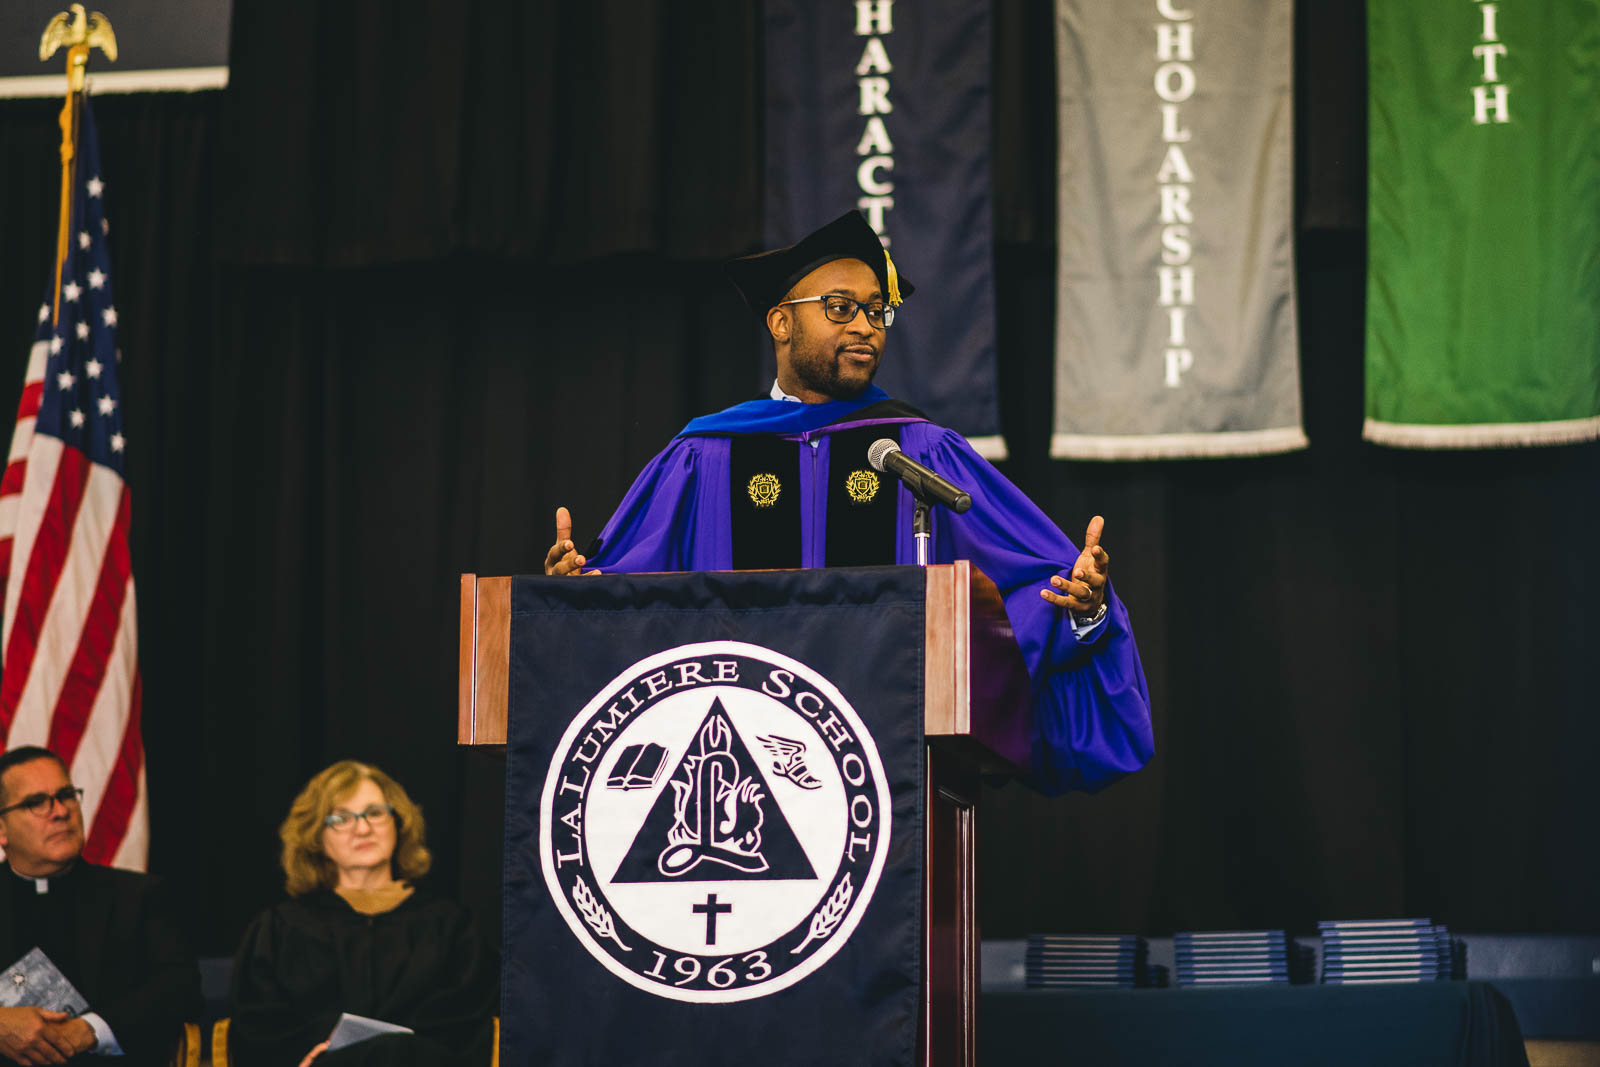 Dr. Nicholas Pearce, an award-winning clinical professor of management and organizations at Northwestern University and Assistant Pastor of Chicago's historic Apostolic Church of God, delivered the keynote address at La Lumiere's 52nd Commencement.